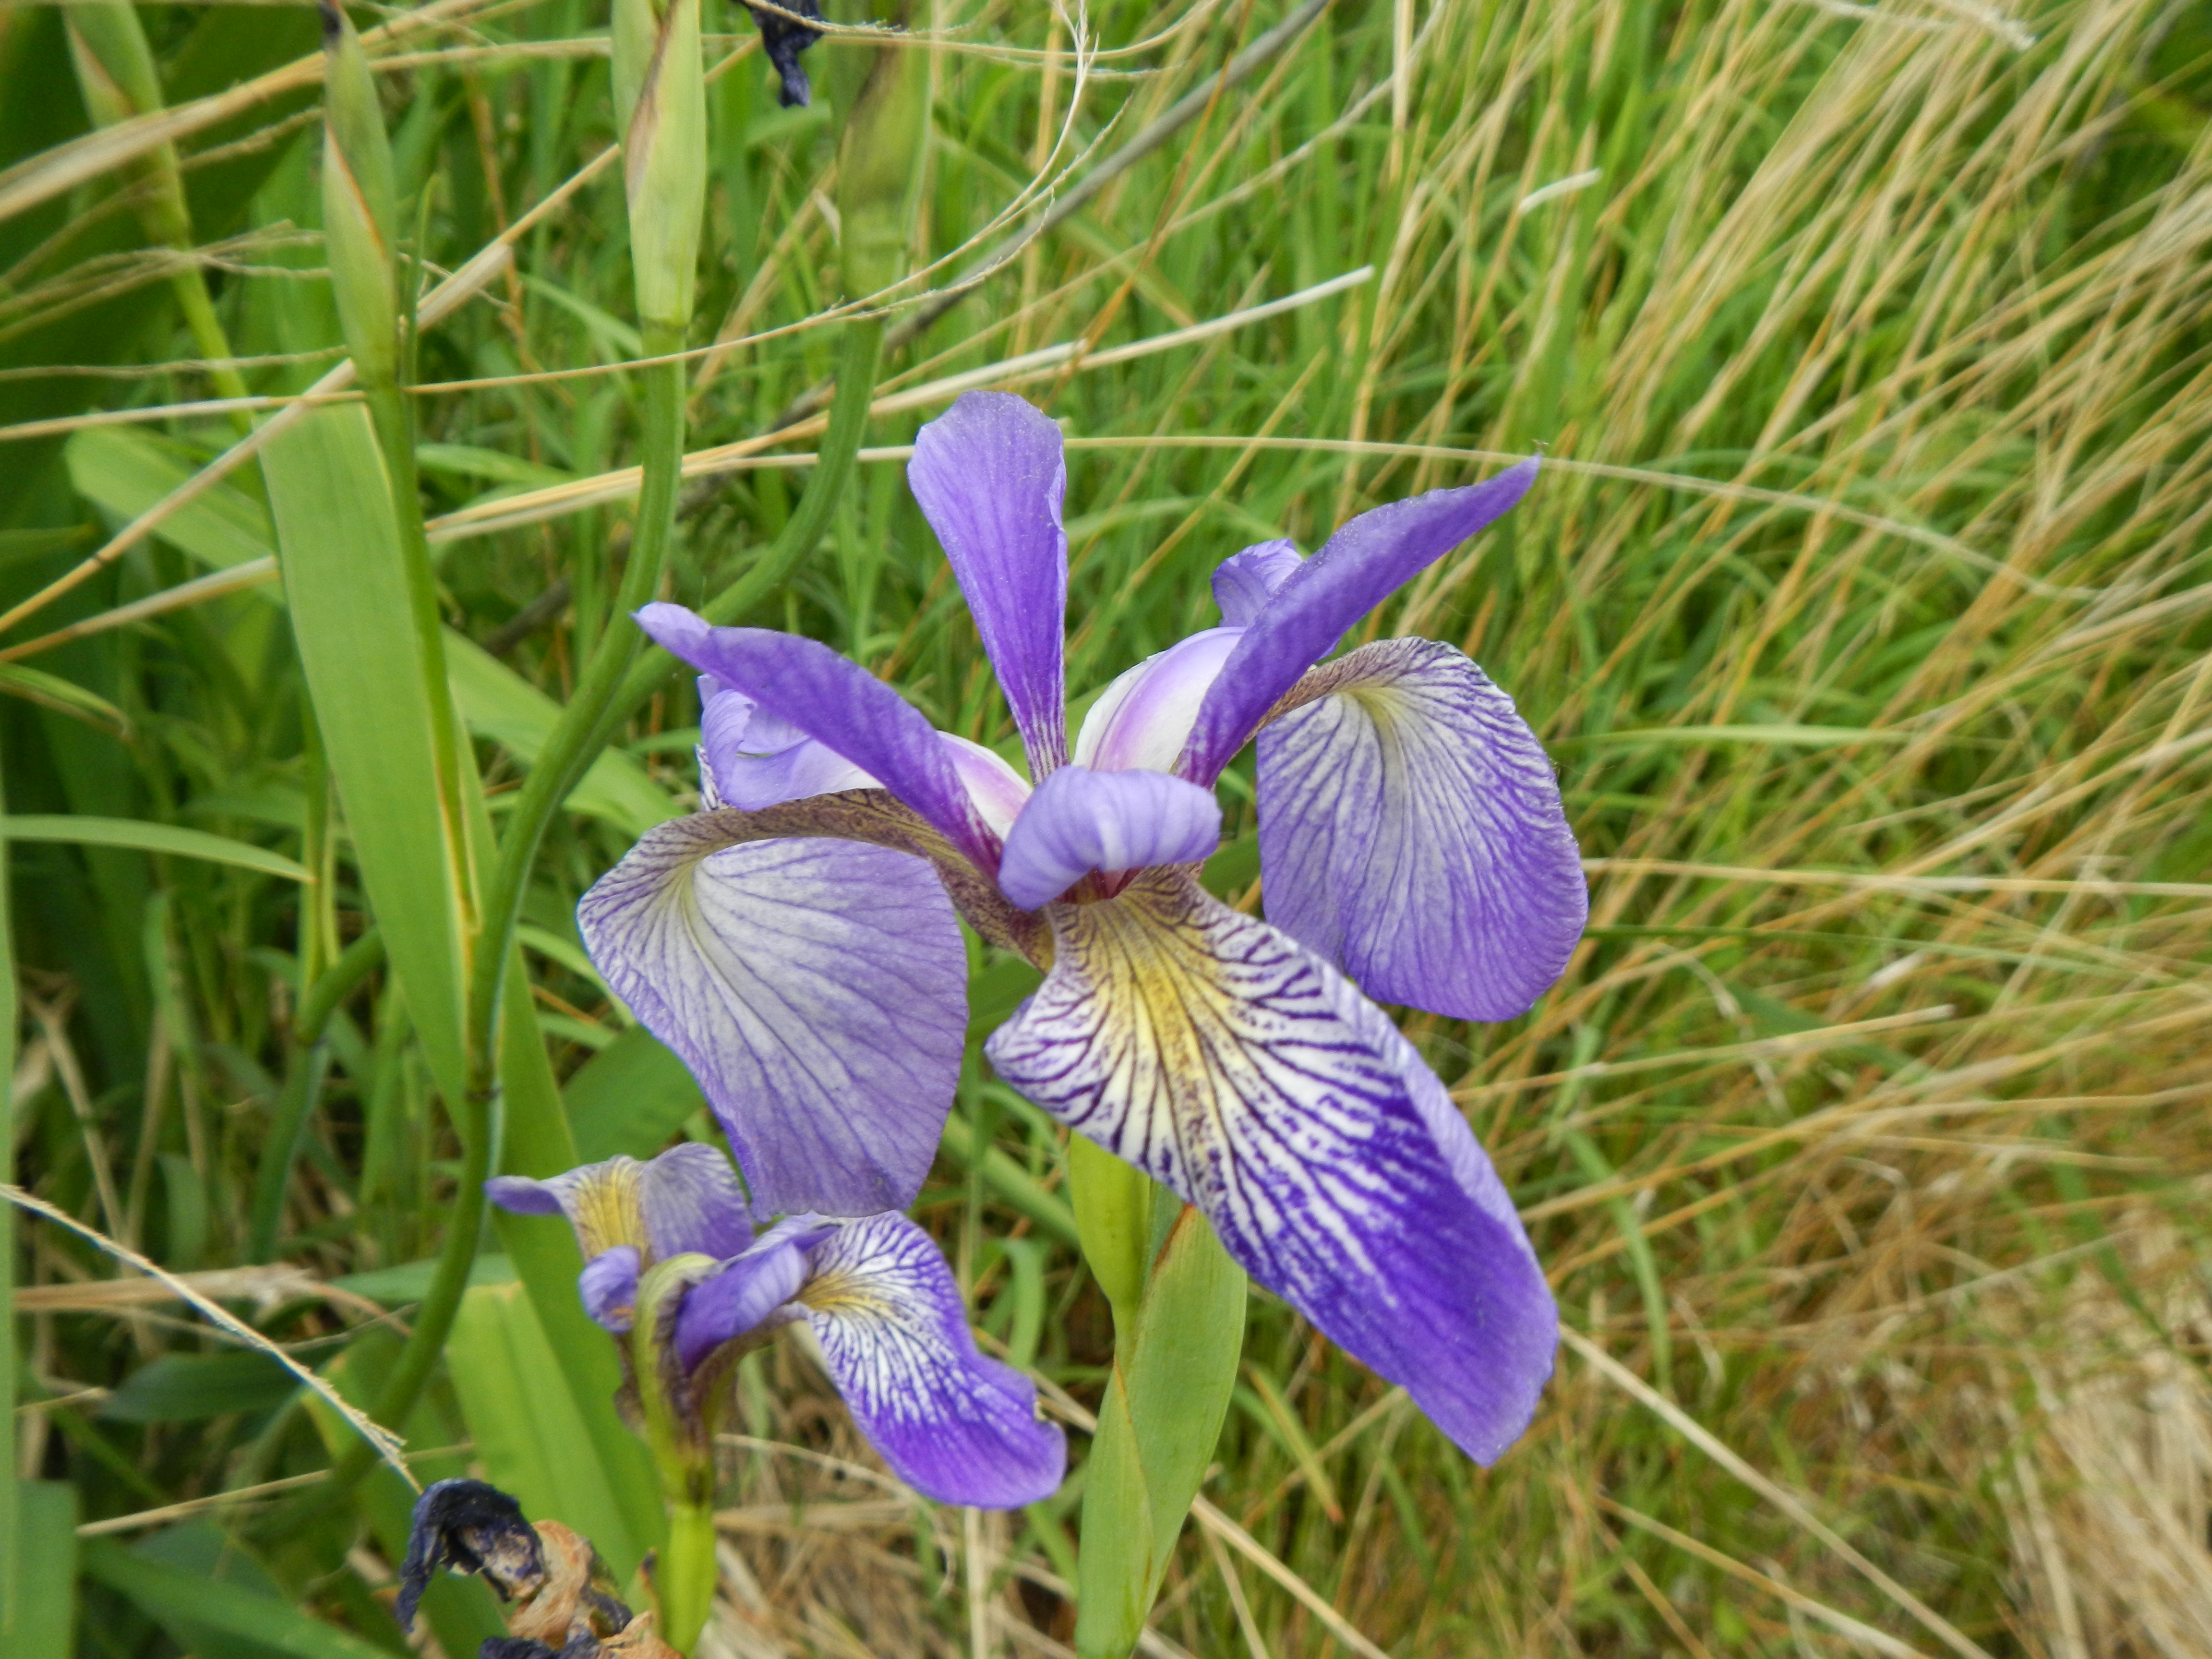 Irises are in full bloom everywhere now